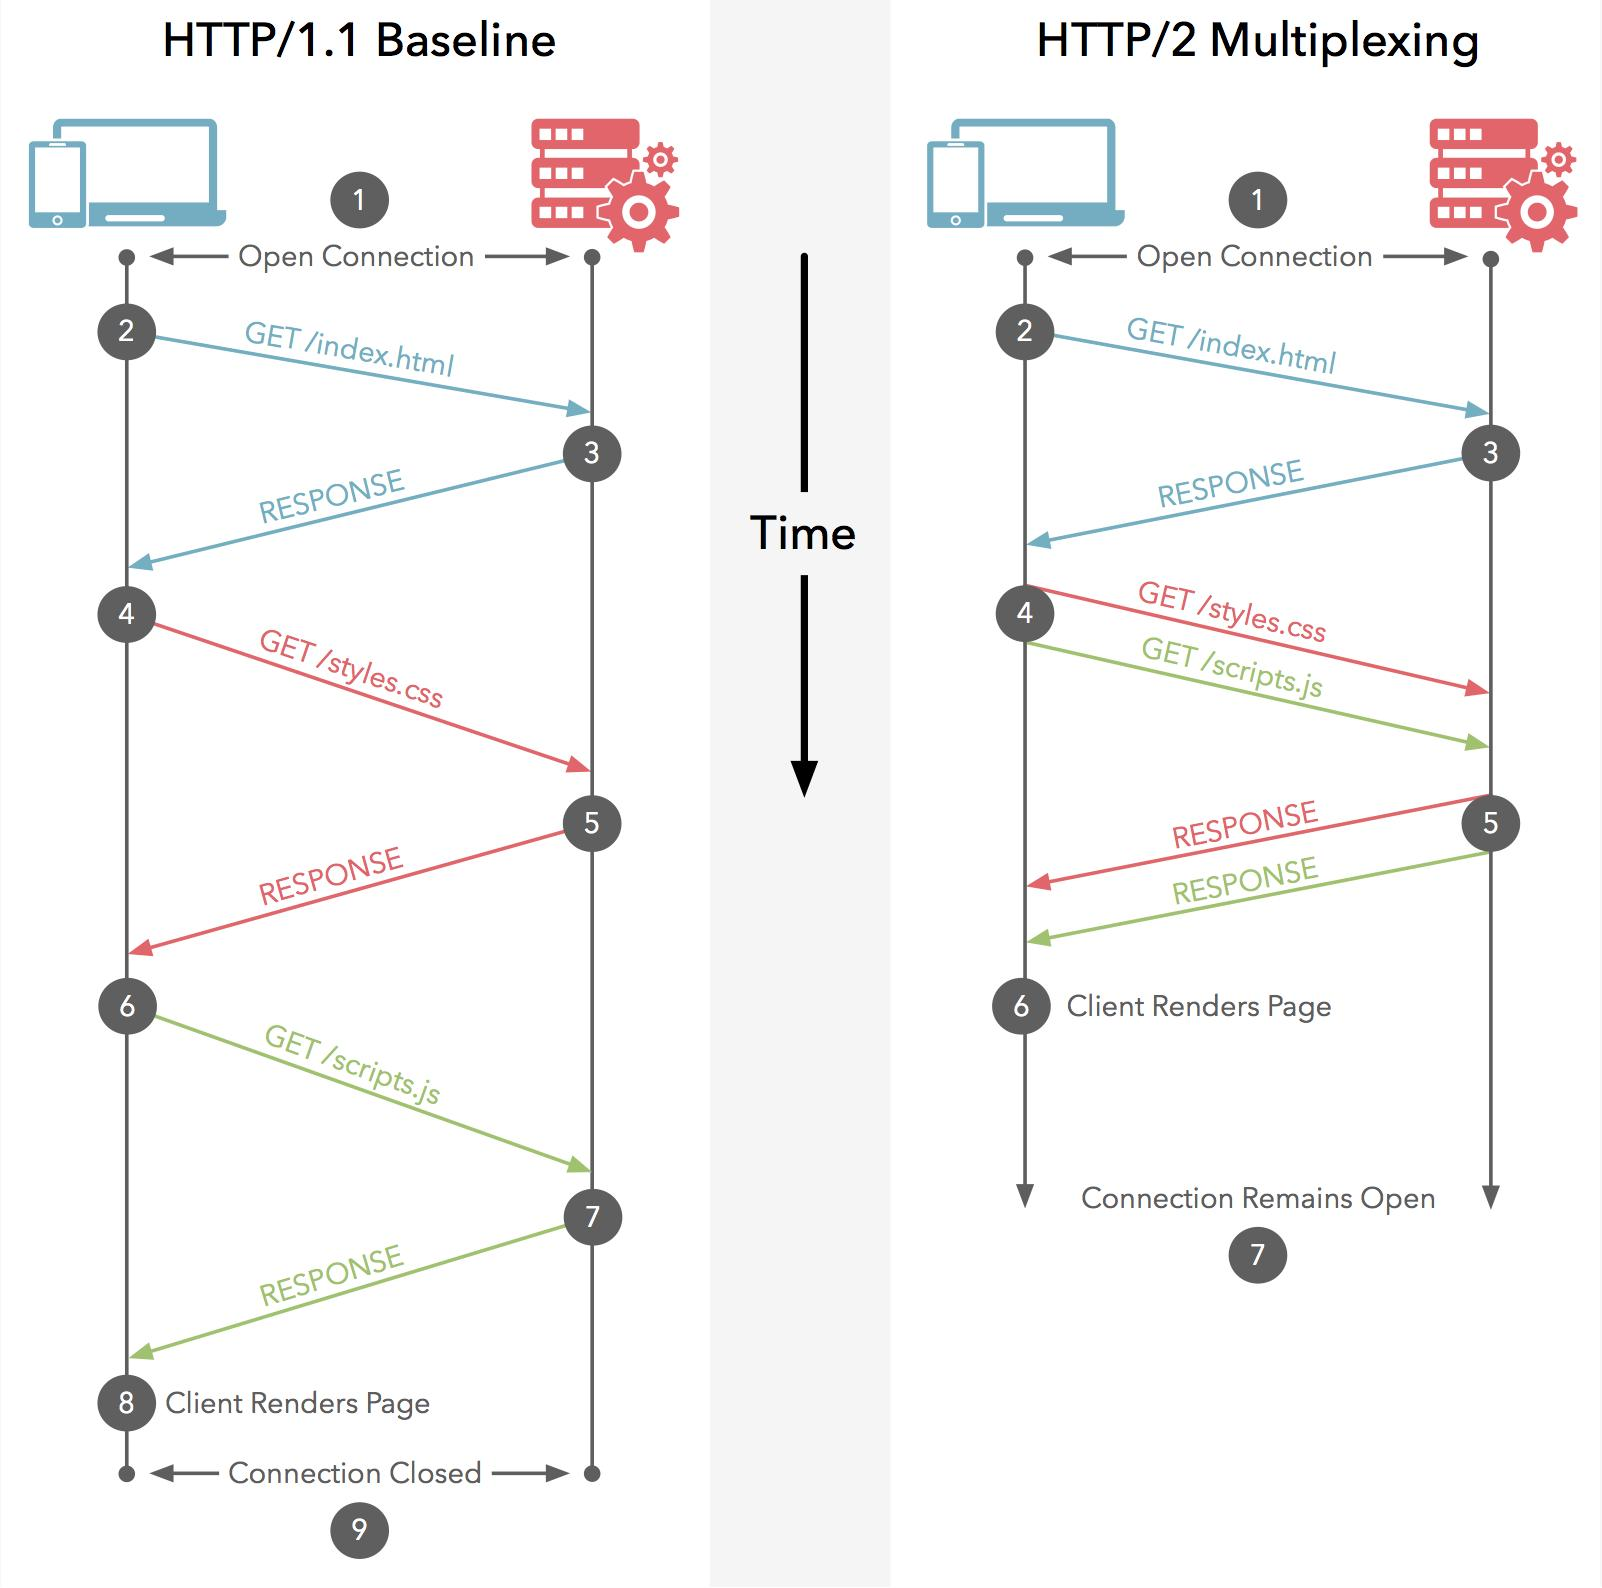 HTTP/2 Multiplexing